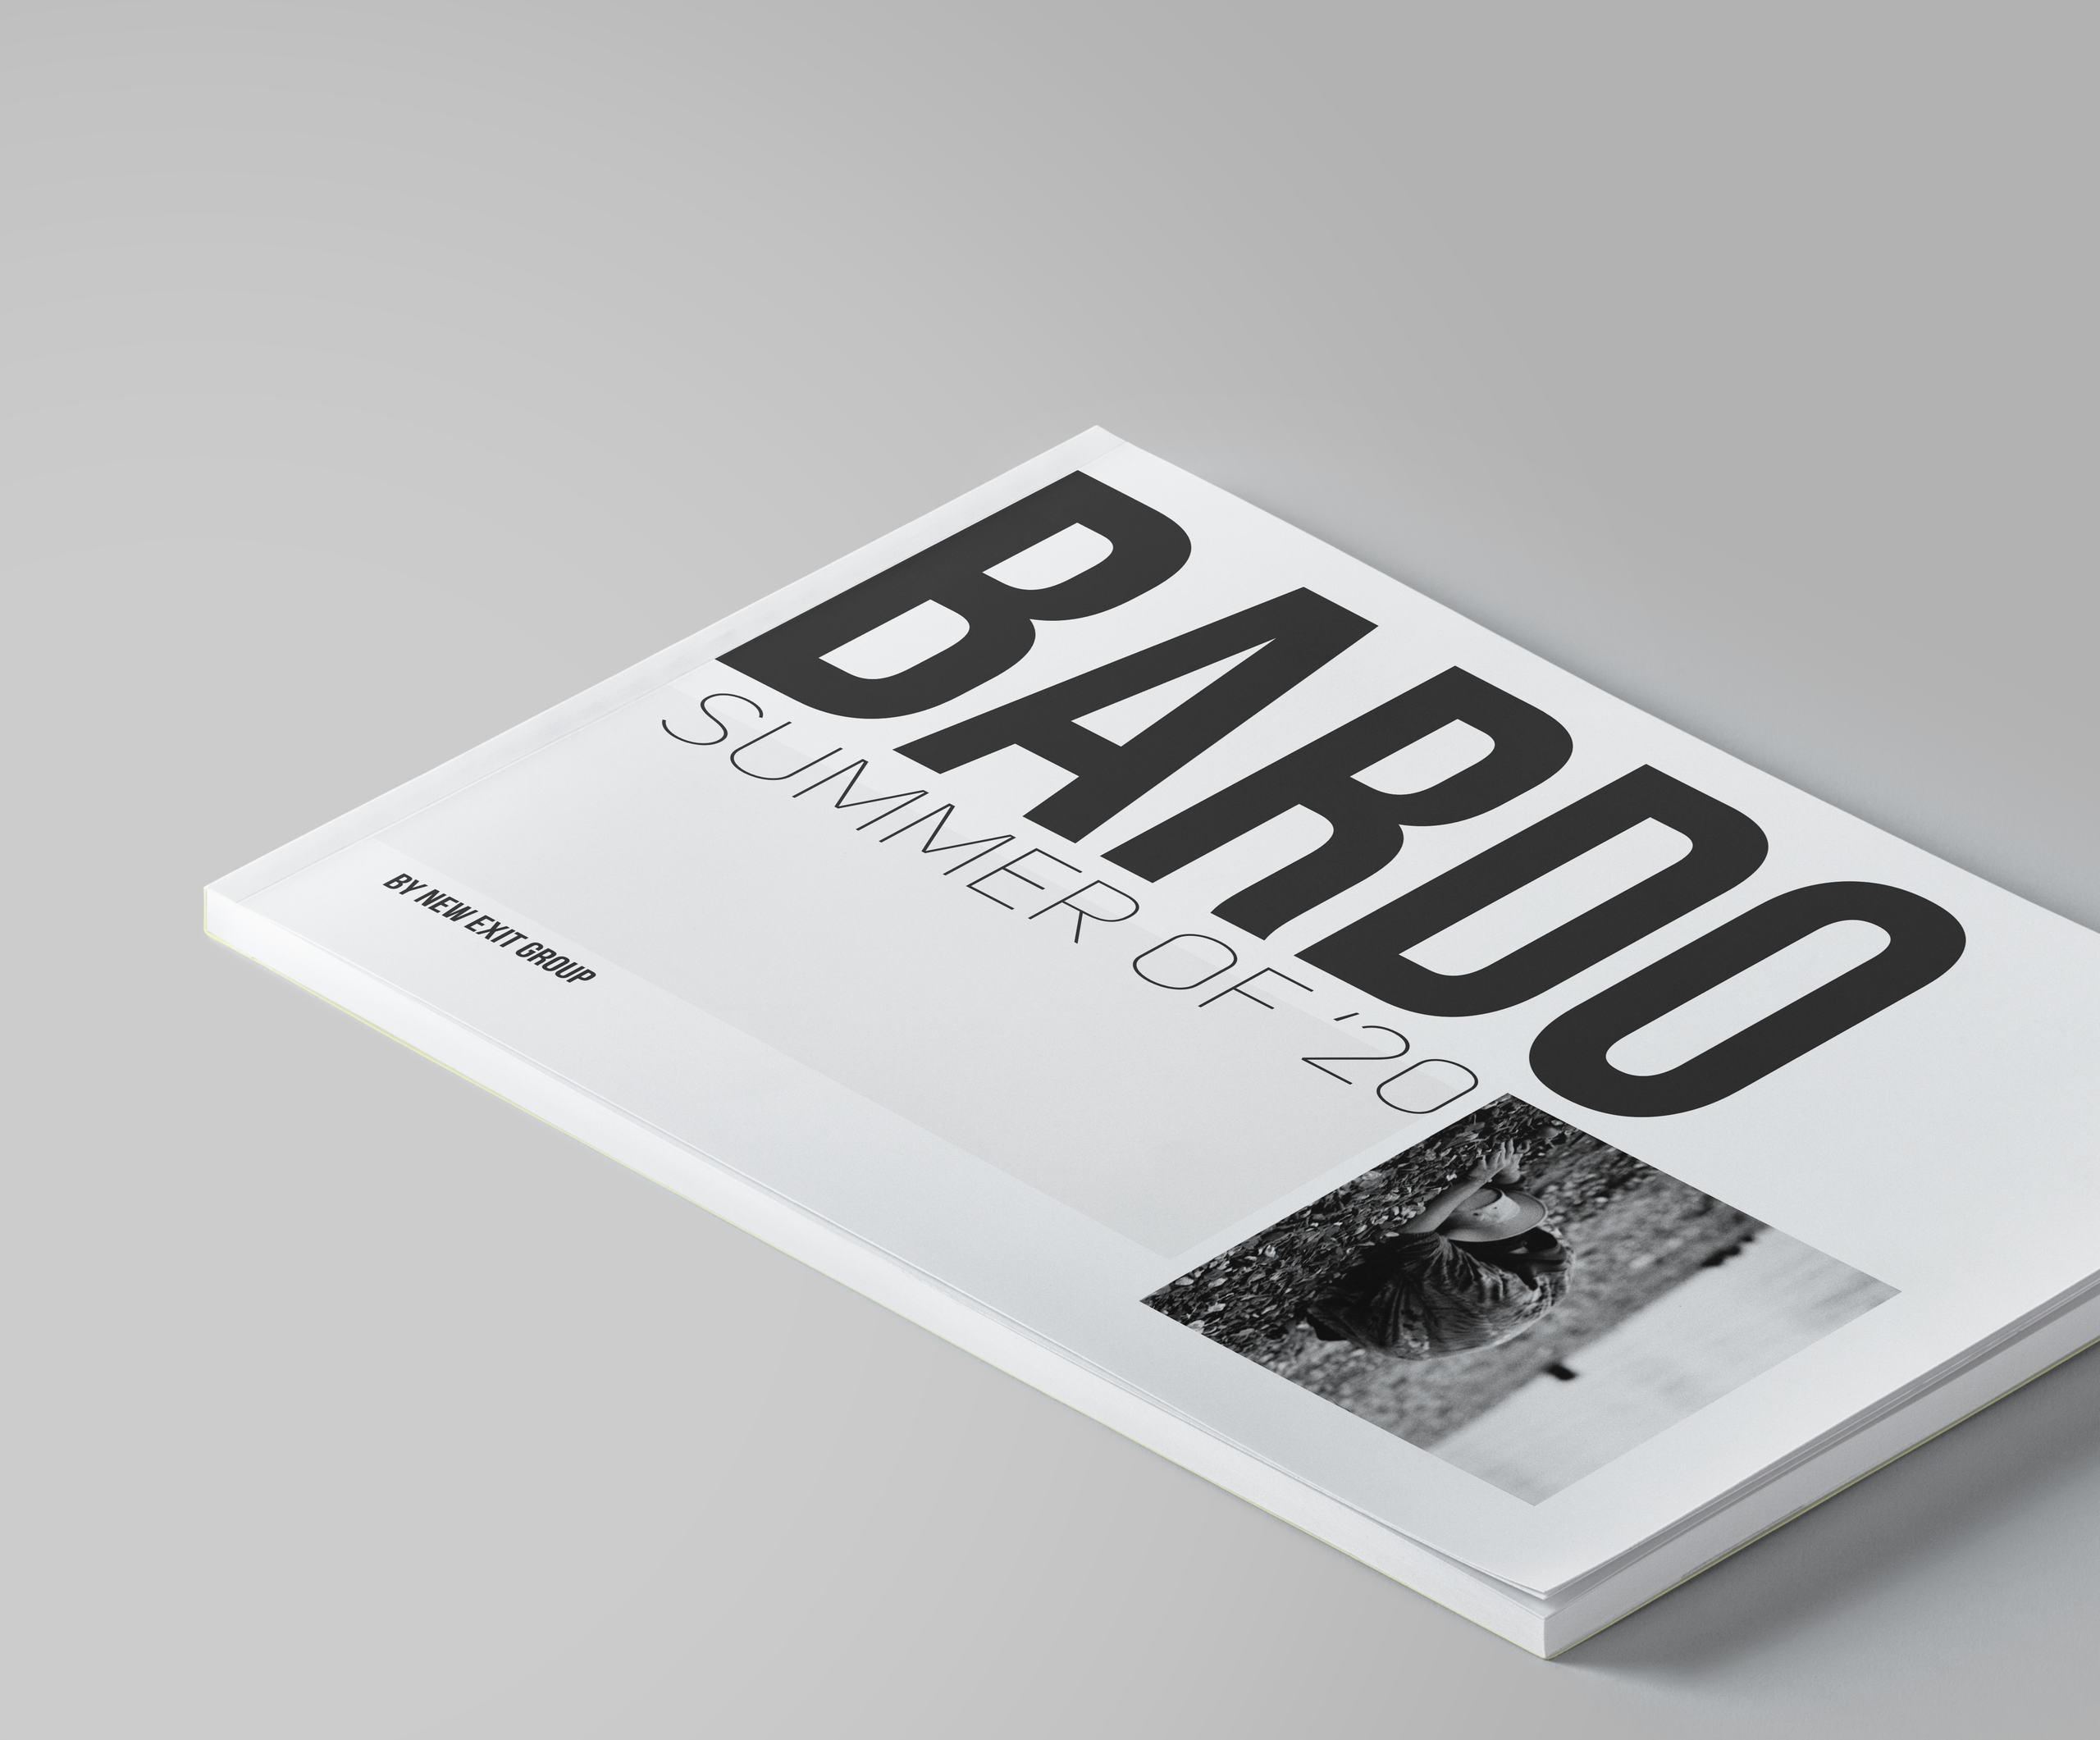 Producing BARDO: The Summer of '20 with Affinity Publisher by Simon King